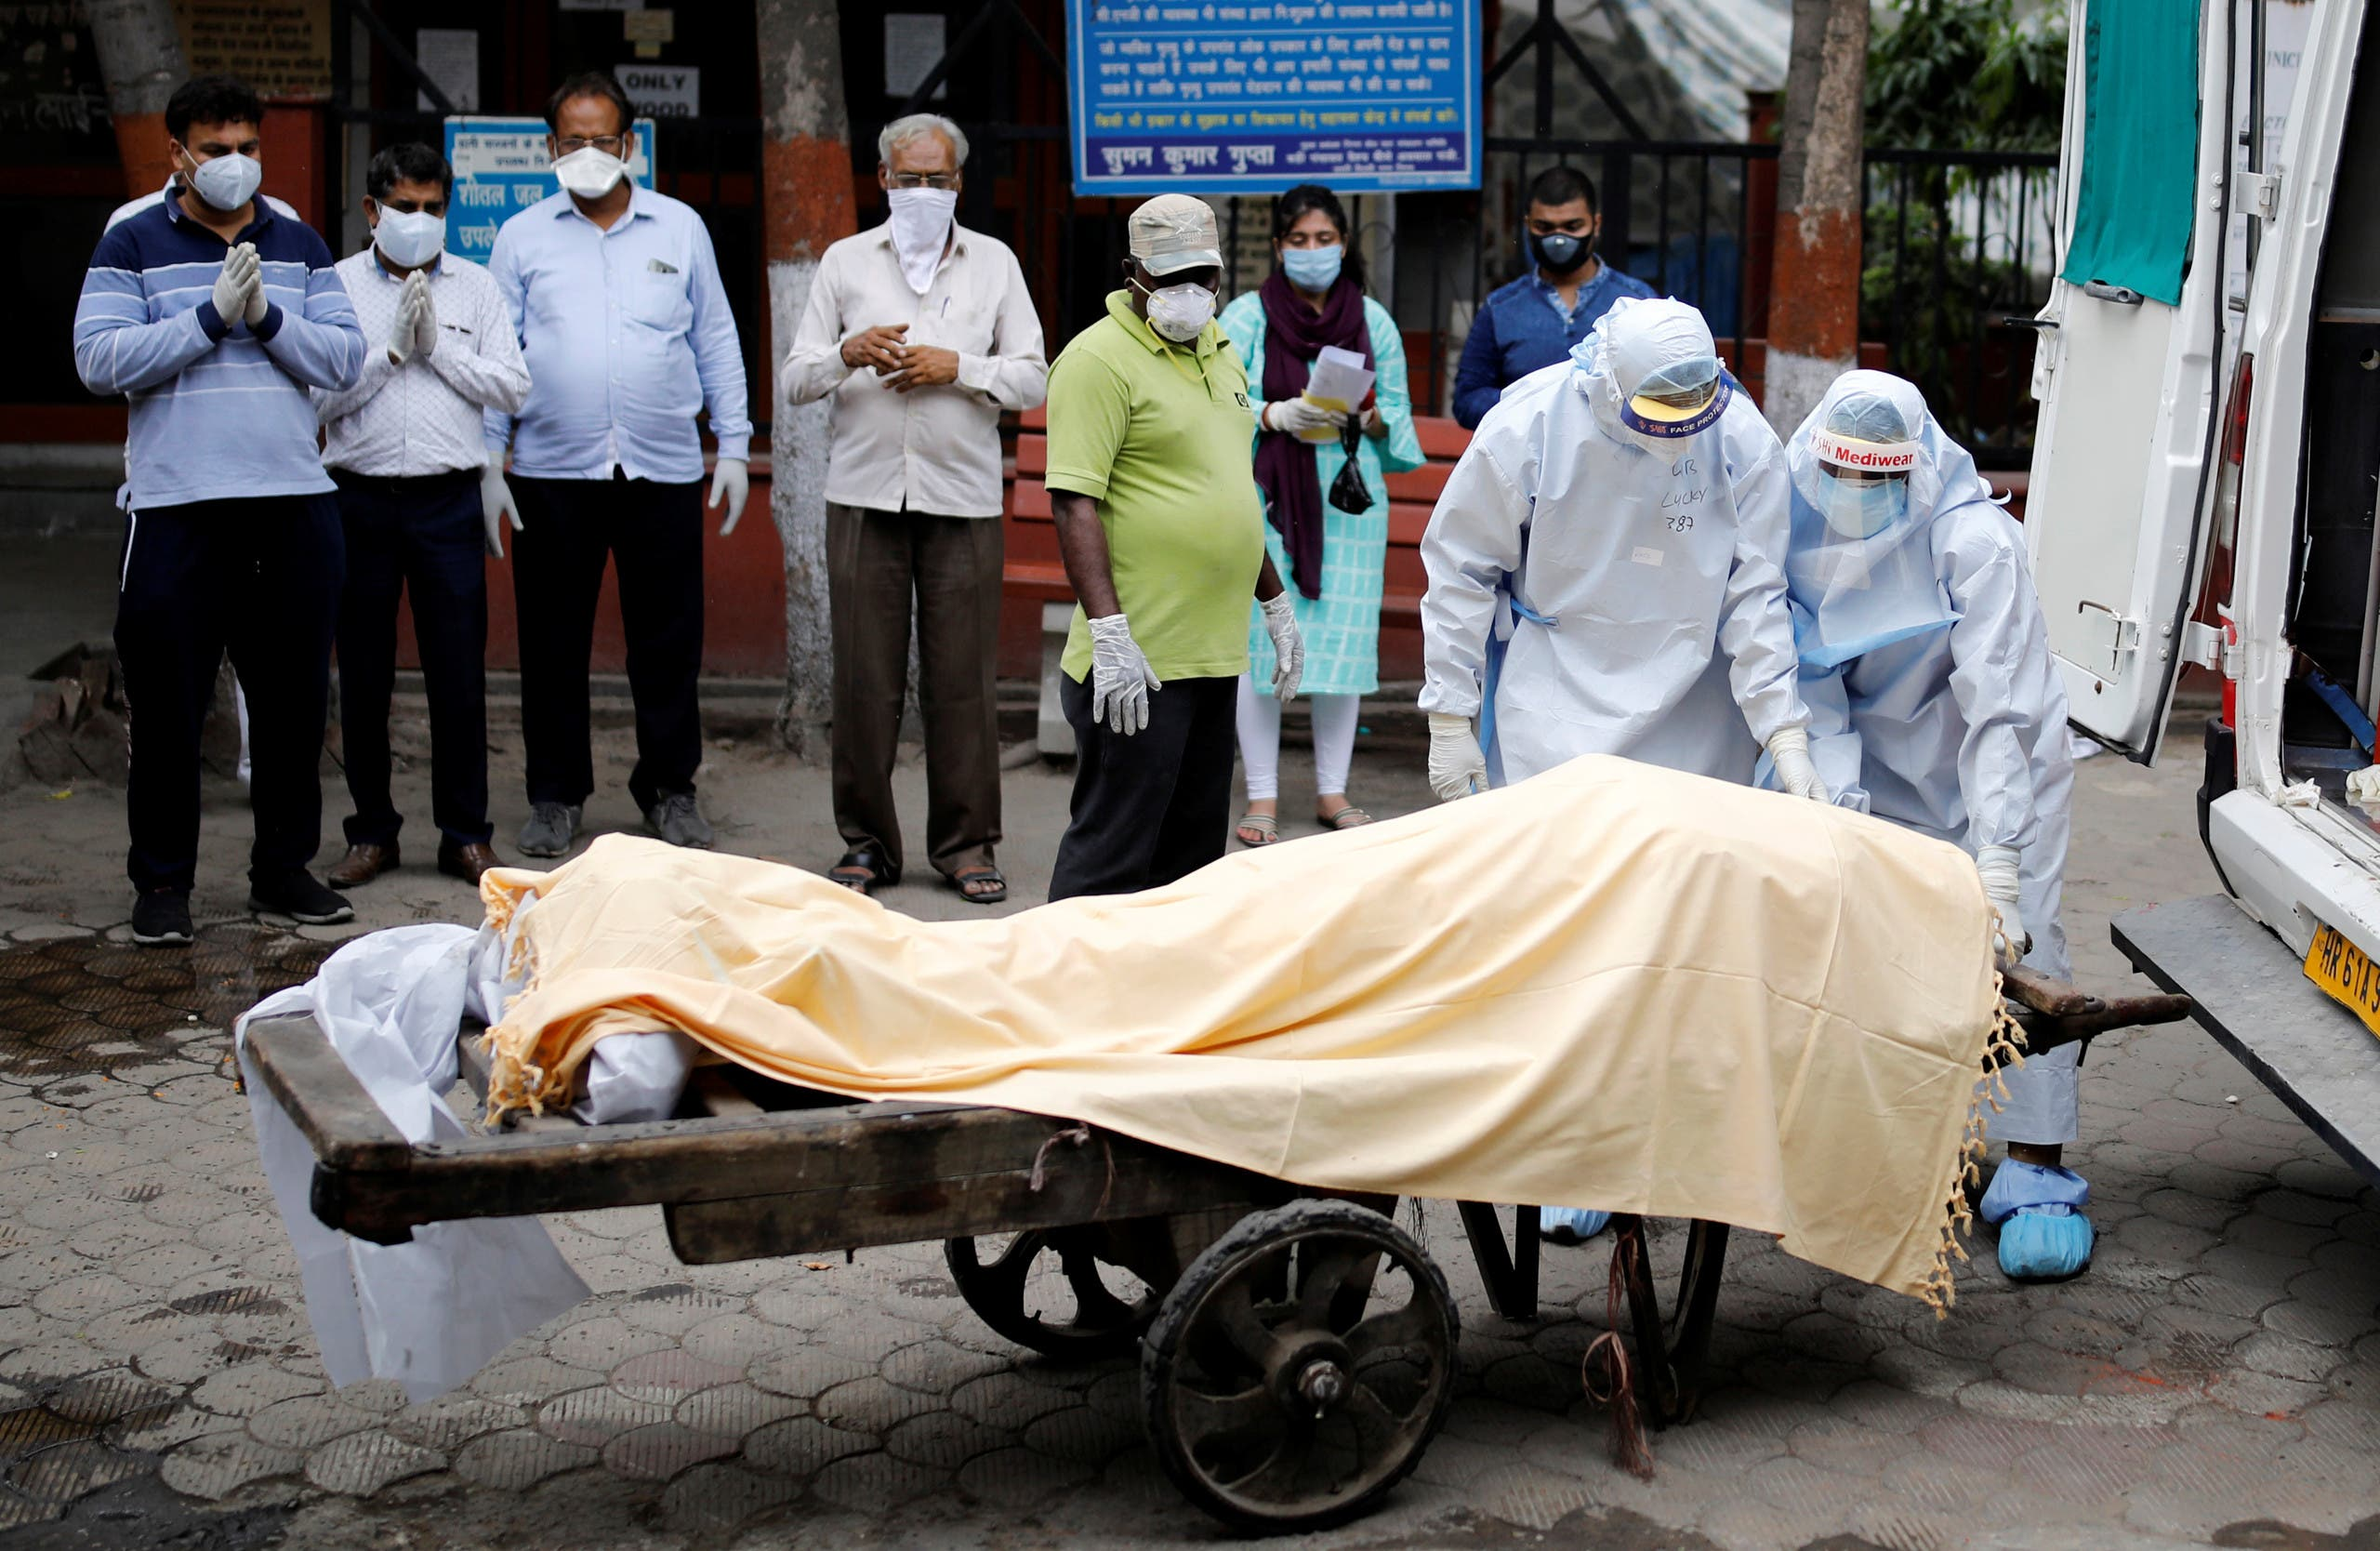 Health workers cover the body of a man who died due to the coronavirus disease (COVID-19), as relatives pay their respects, at a crematorium in New Delhi, India, June 4, 2020. (Reuters)